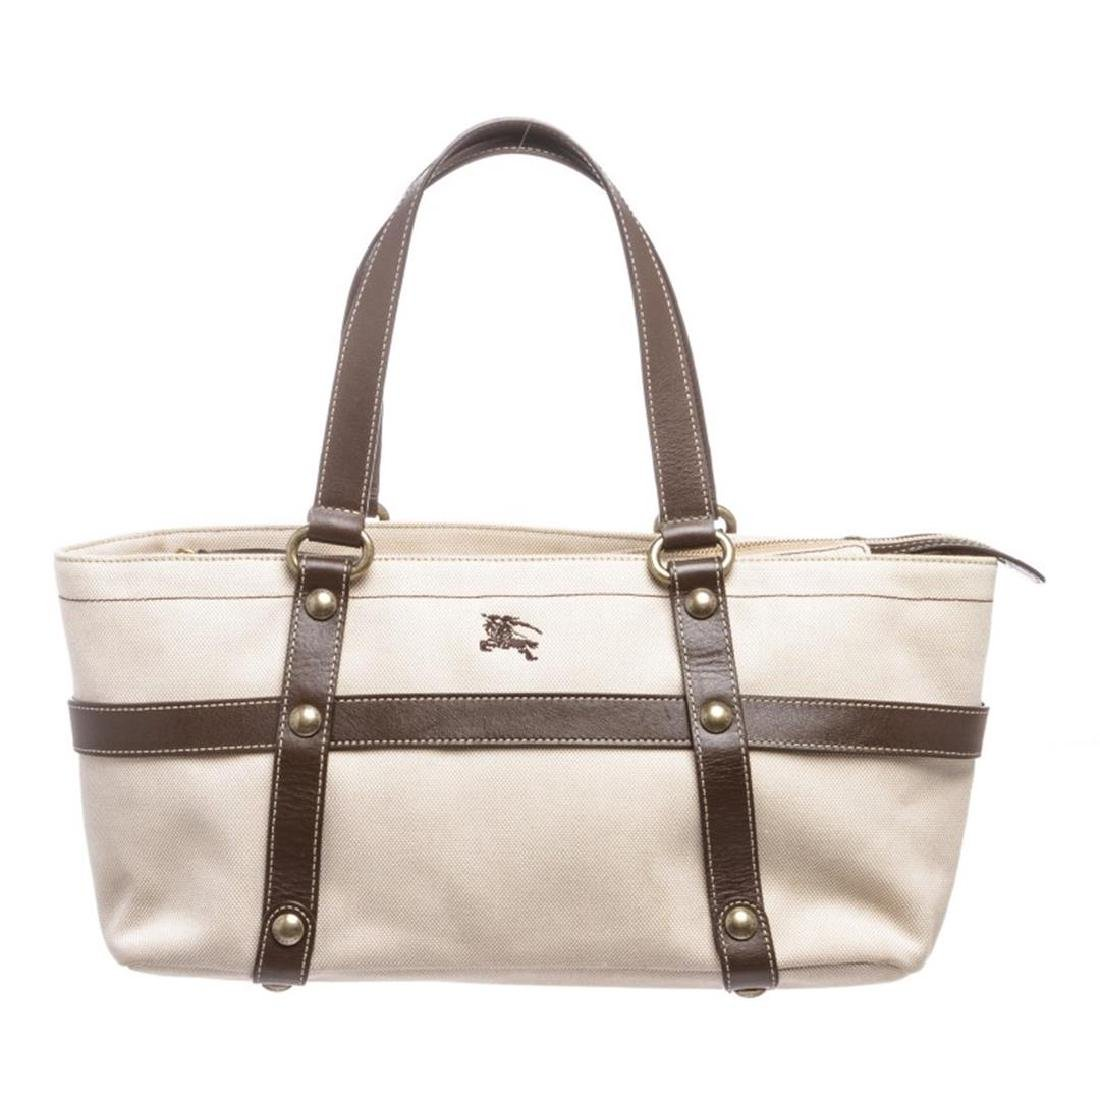 Burberry Beige Brown Canvas Leather Shoulder Bag